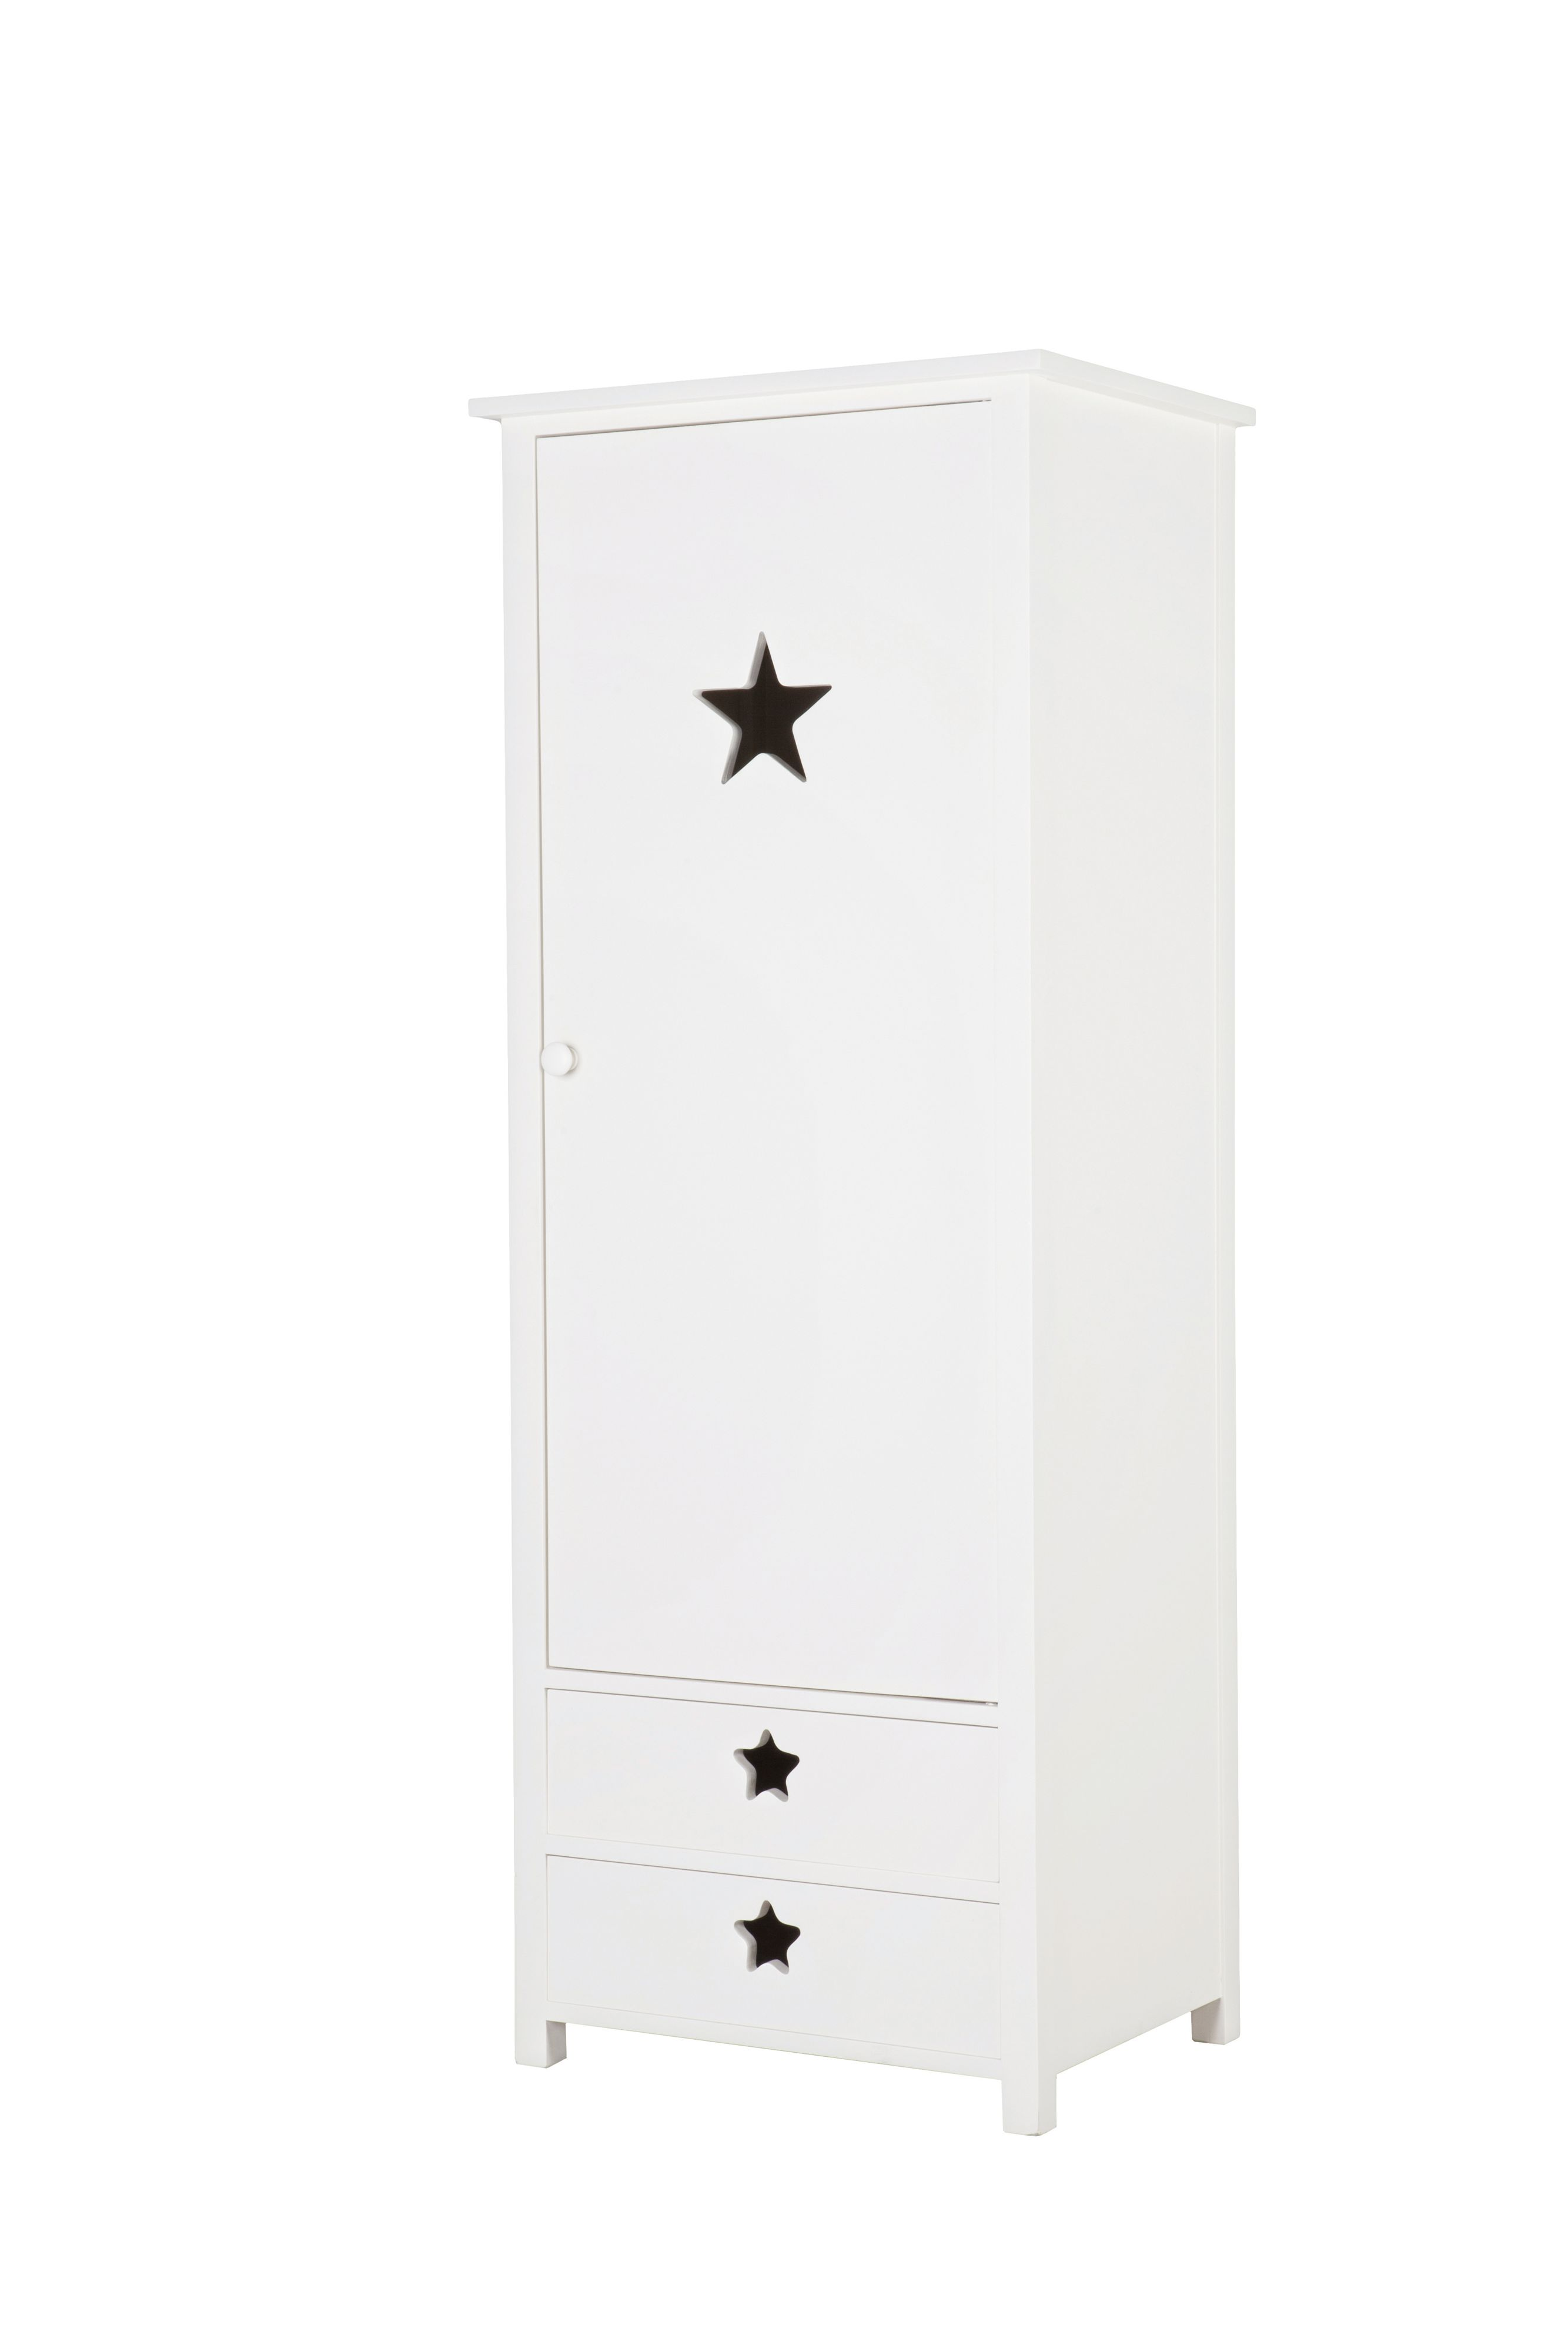 Star One Door Wardrobe